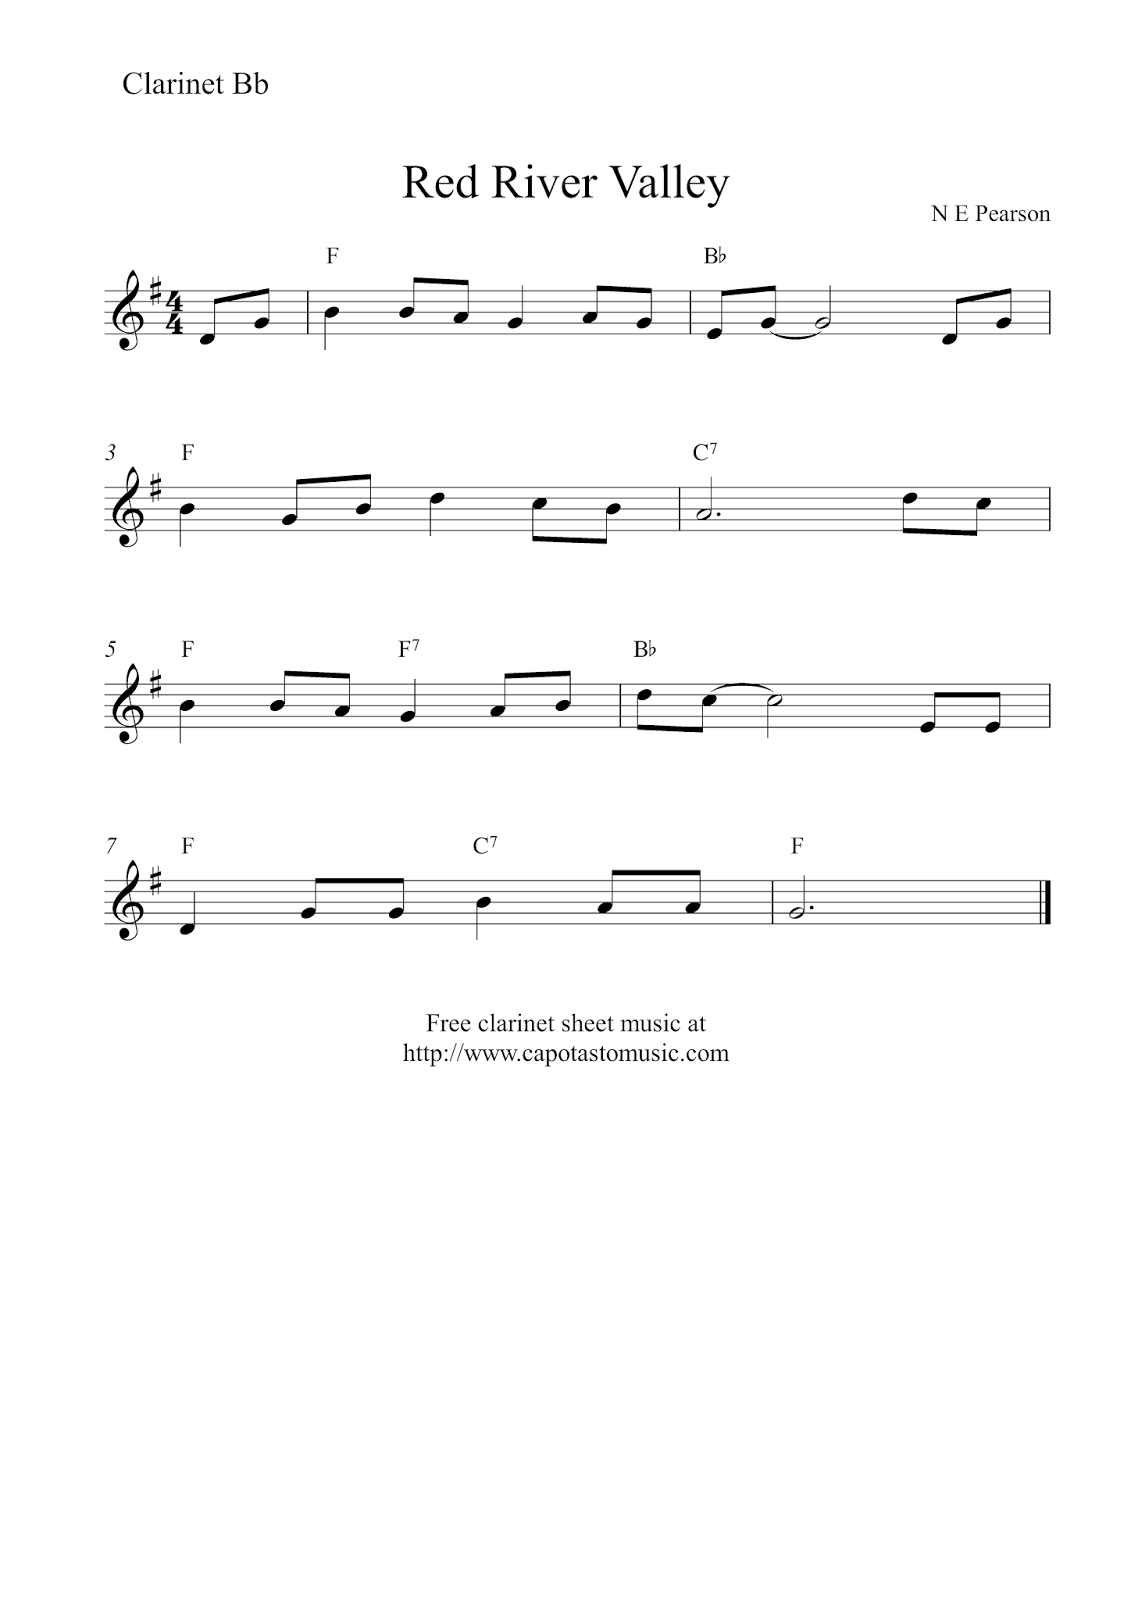 Free Printable Sheet Music Free Easy Clarinet Sheet Music Red River Valley